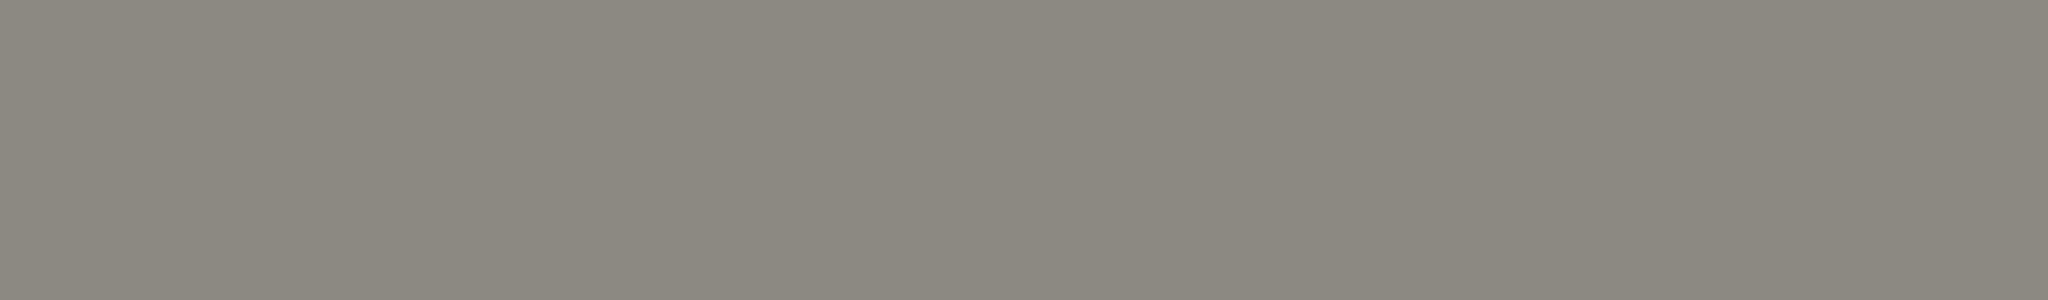 HSE 175335 ABS Edge with Acrylic Foil Grey Smooth Gloss 90° Hot-Air